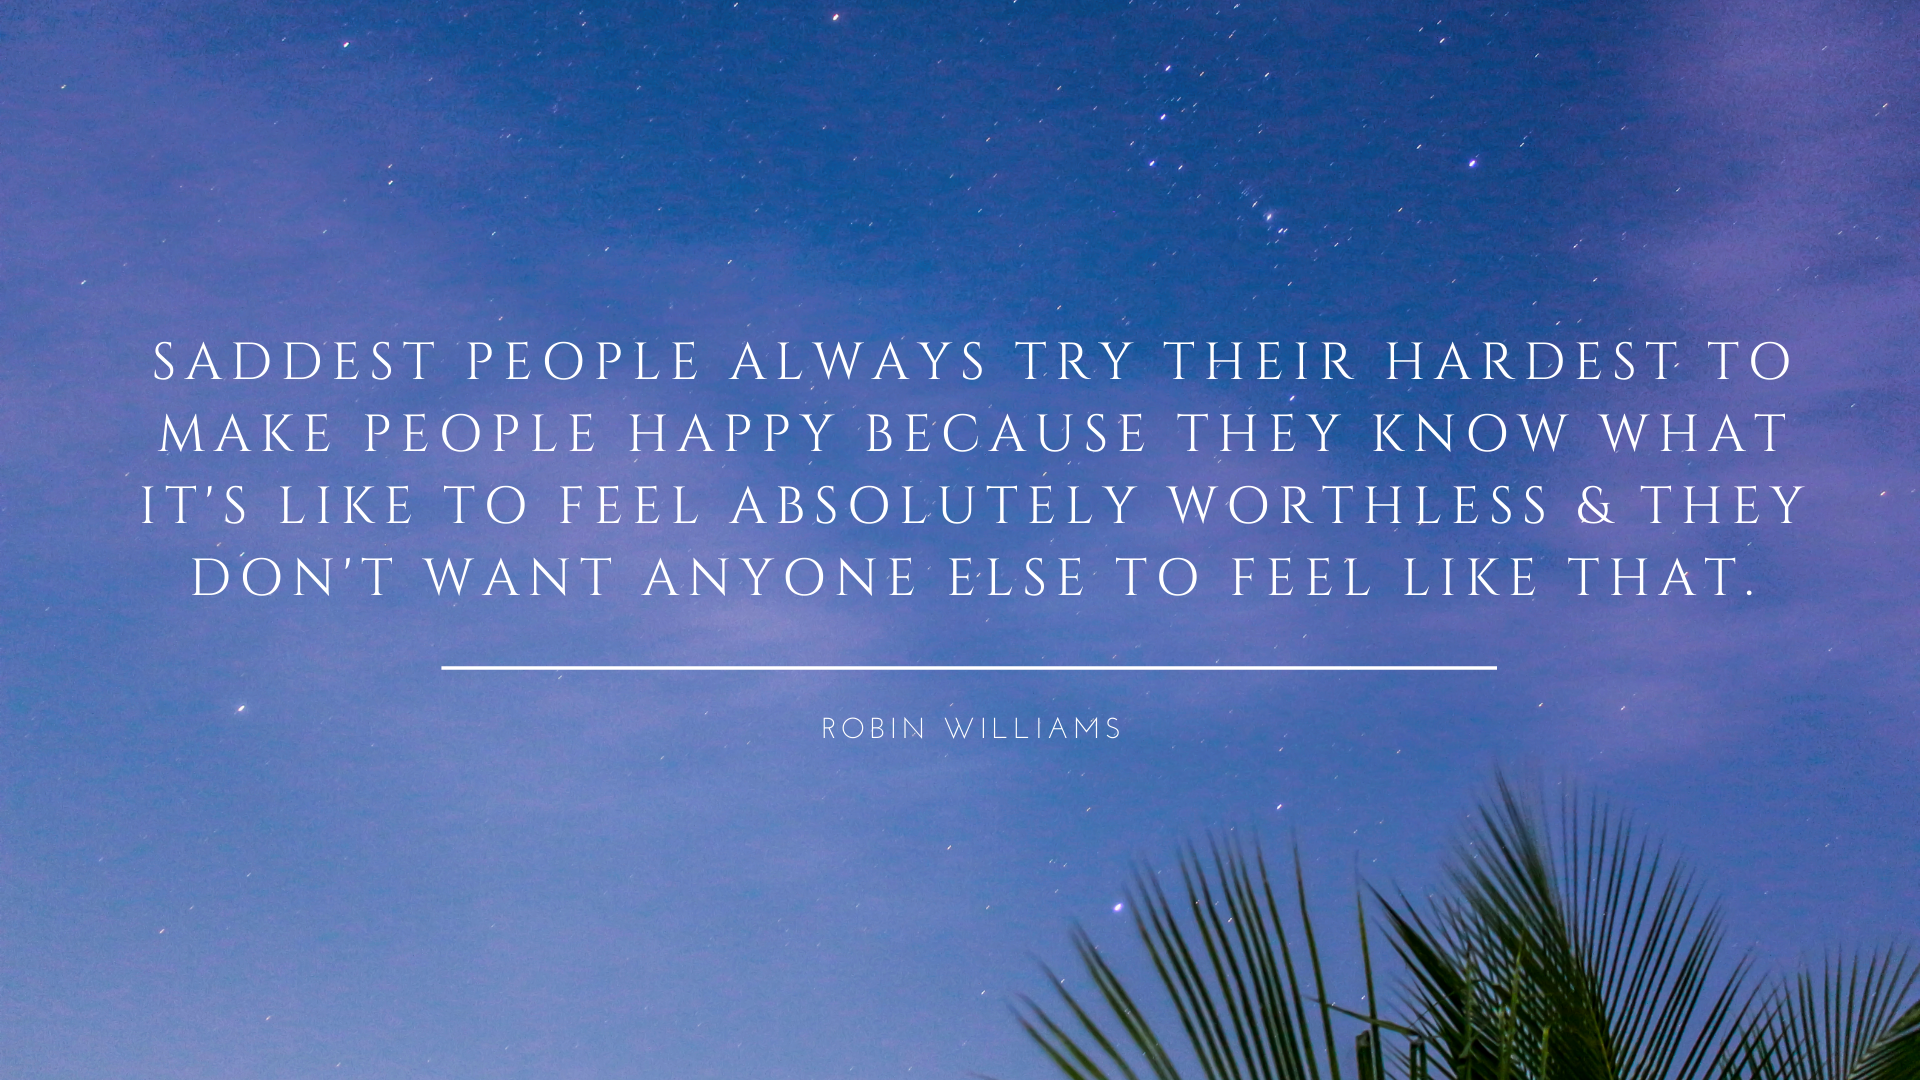 Saddest people always try their hardest to make people happy because they know what it's like to feel absolutely worthless & they don't want anyone else to feel like that. – Robin Williams[1920×1080]